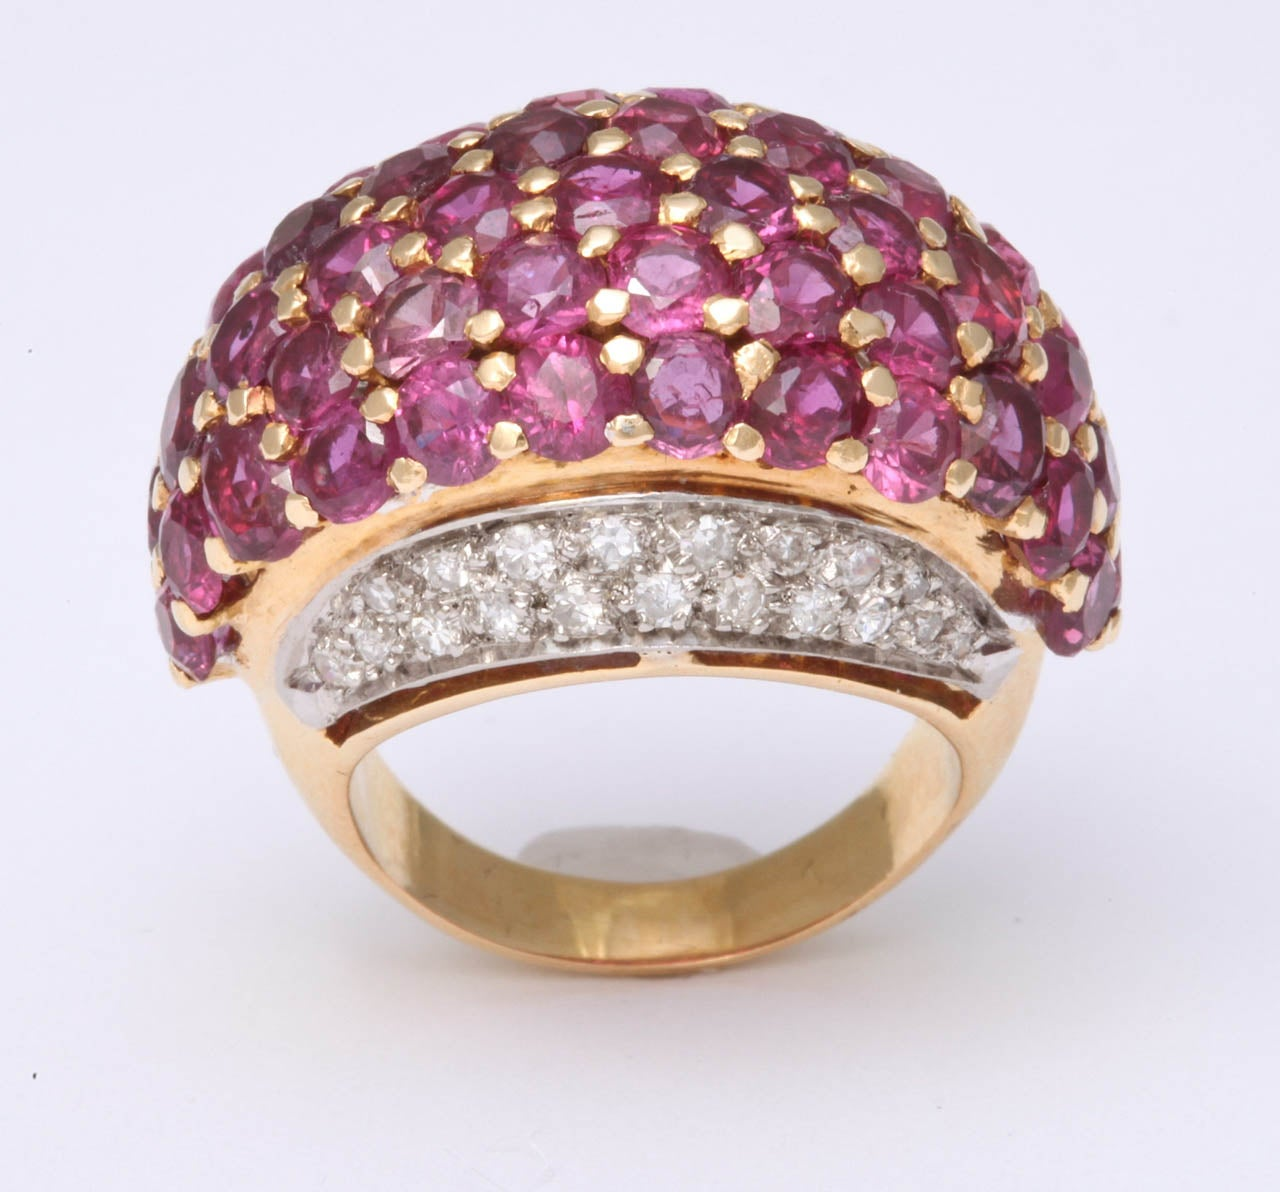 18Kt Yellow Gold Dome Ring.  Center set with faceted Rubies, prong set with sides , pave set, with full cut Diamonds. Approximately 2 cts of Diamonds & 5cts of Rubies.  Very chic & high style. Set in Rose Gold & Platinum.  The perfect Pinky Ring.